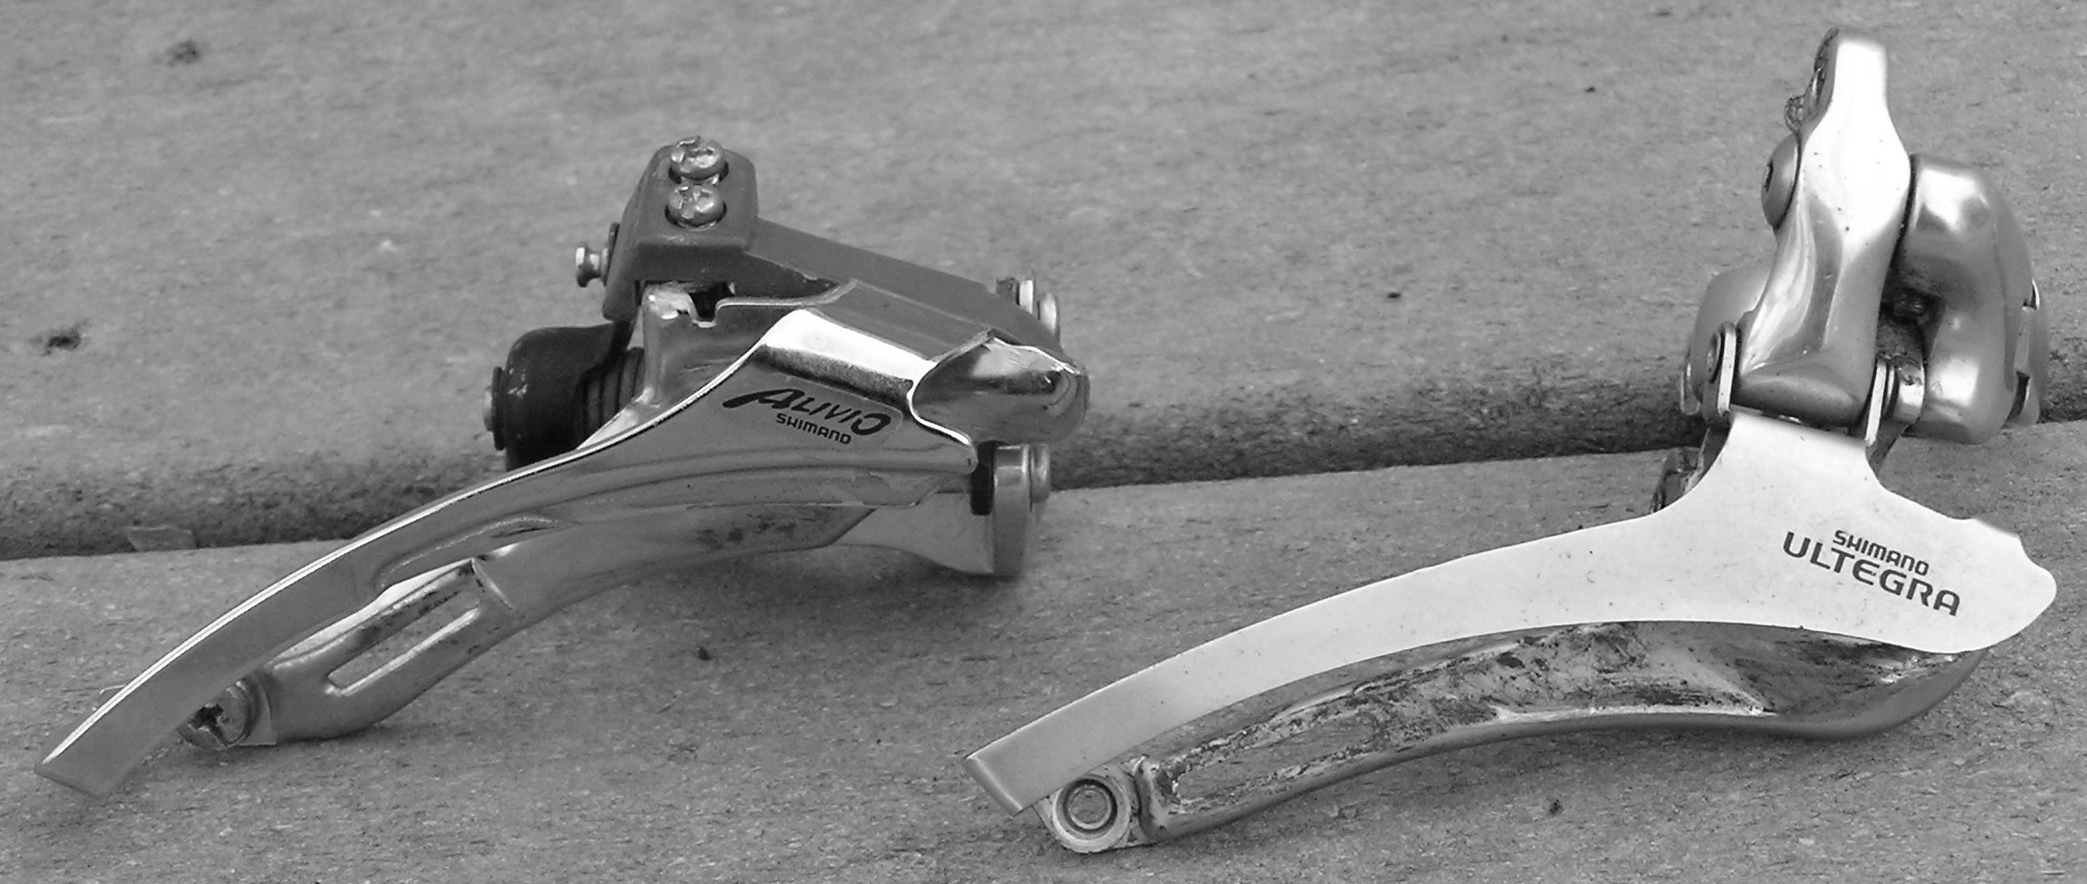 Figure 3: Two front derailleurs. The derailleur on the left has a clamp lower than the top of the cage.